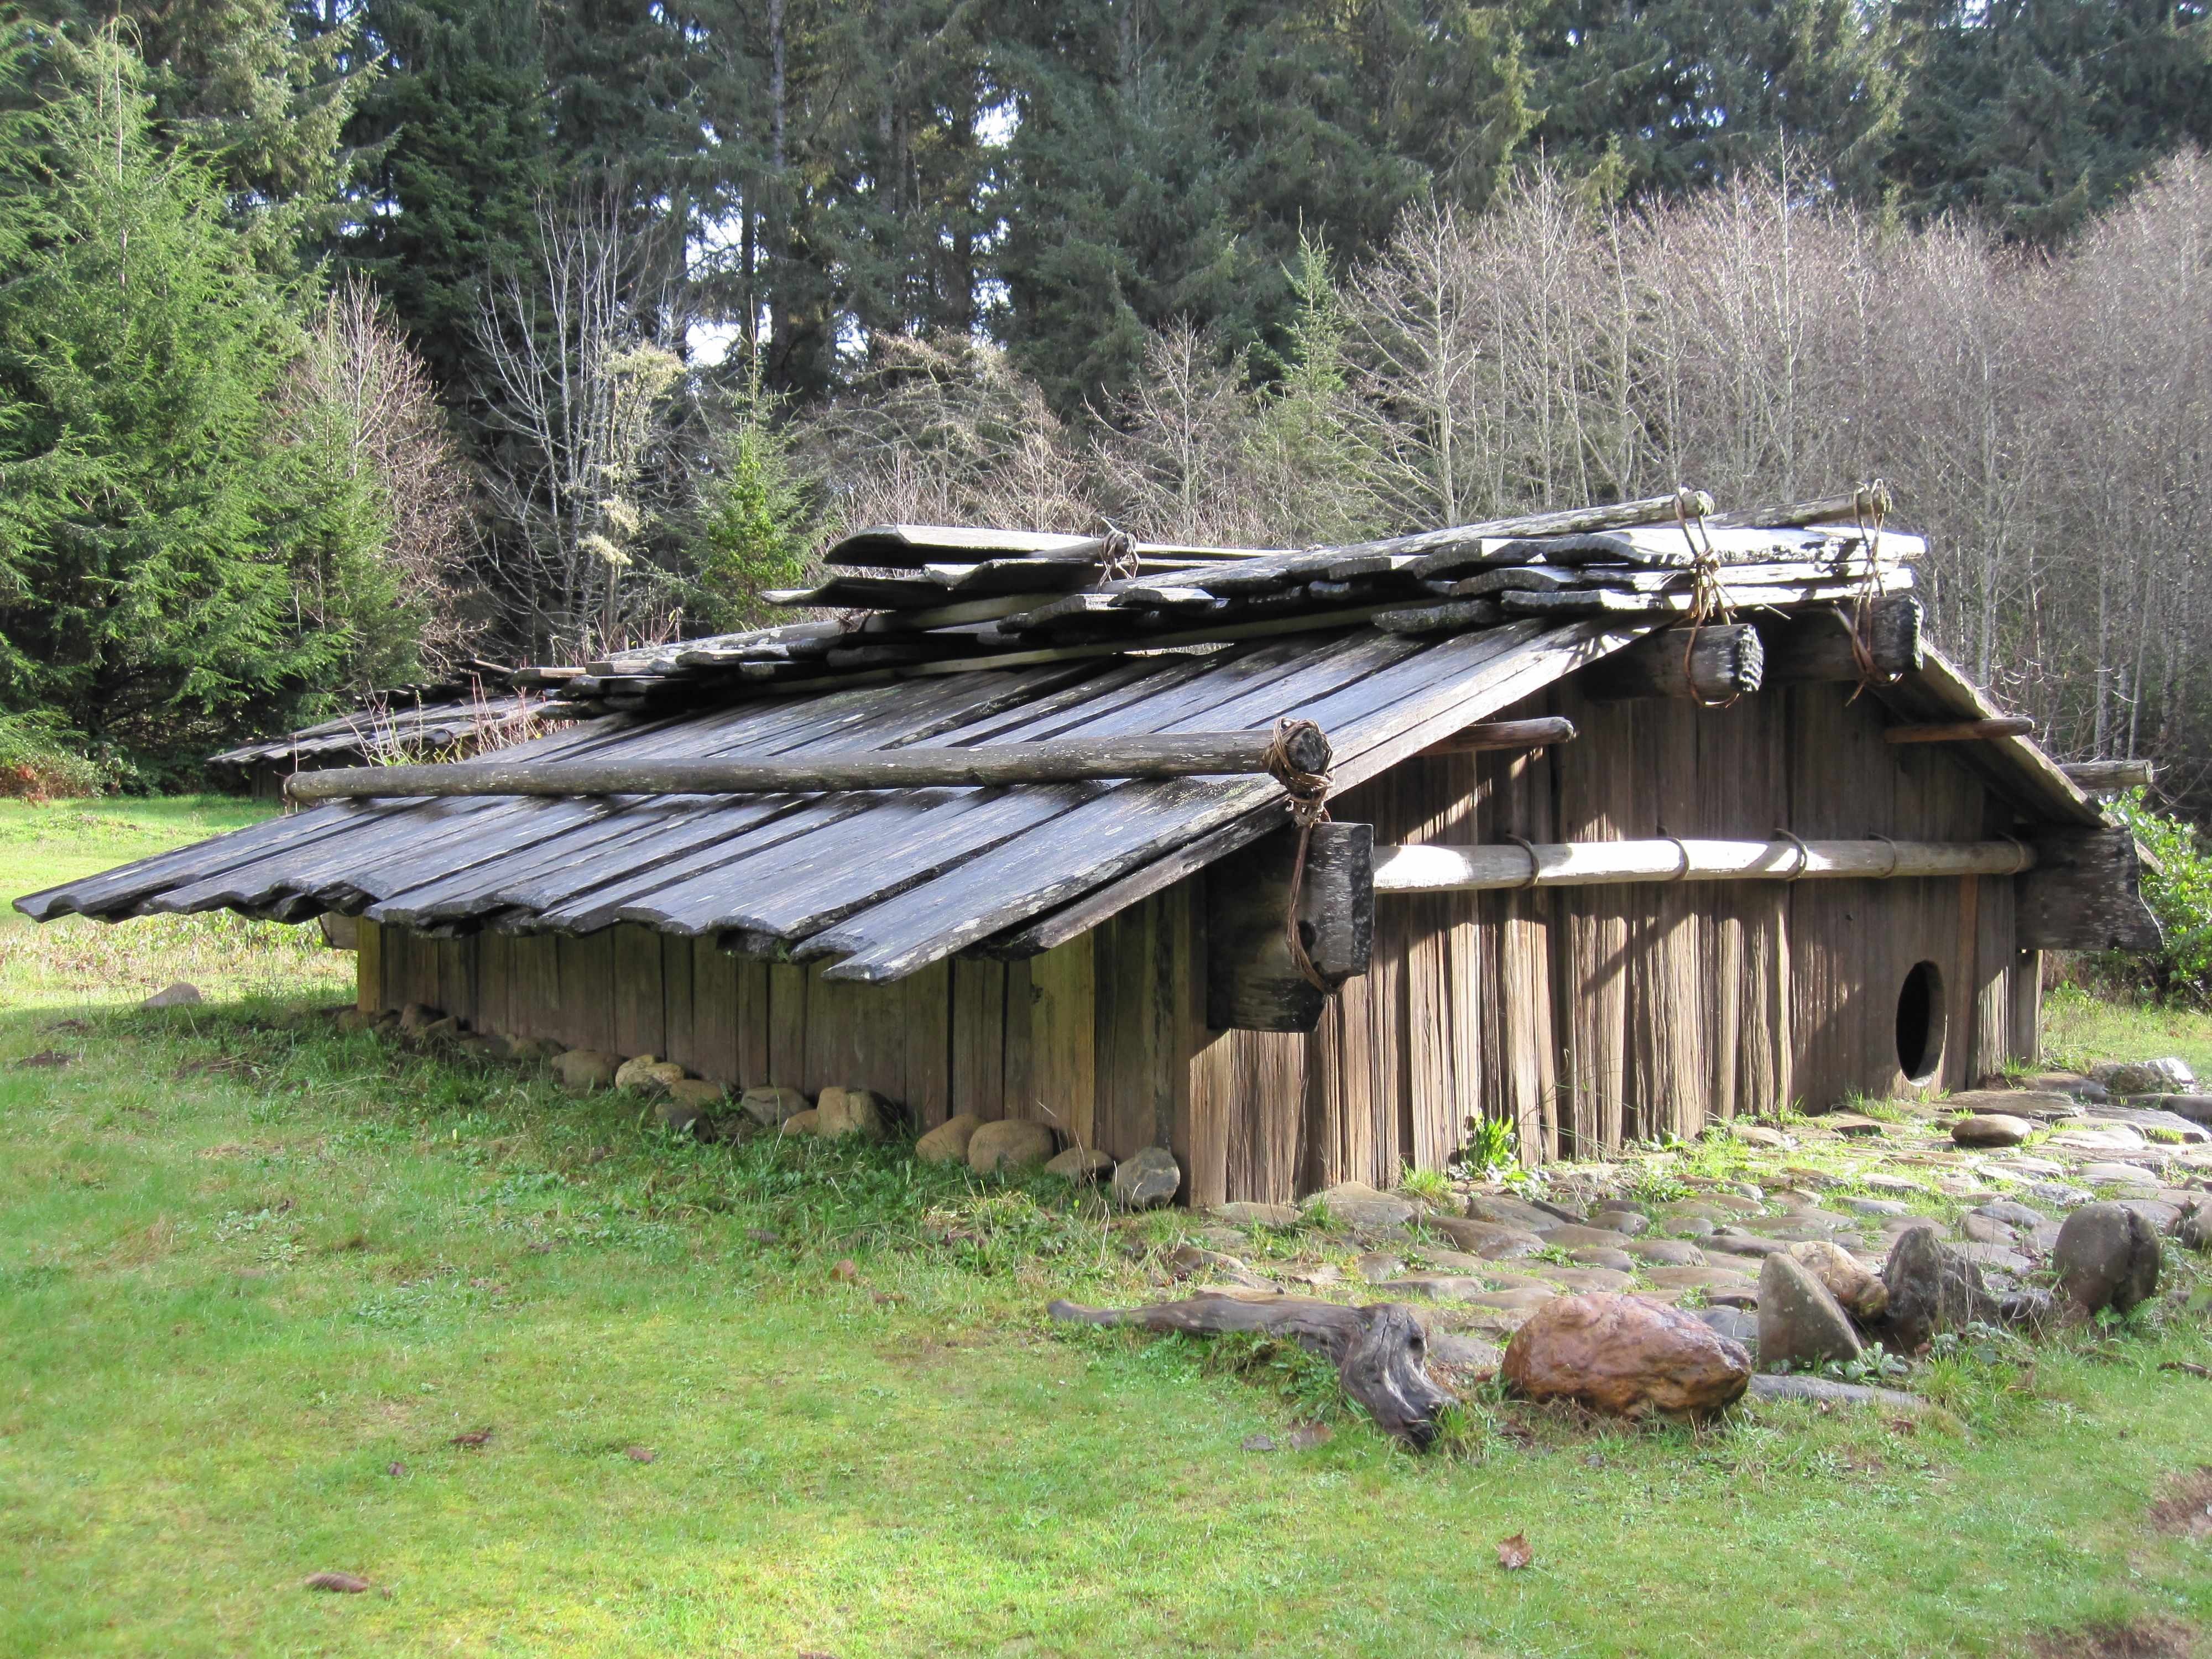 Plank houses varied in design according to tribe, as these four ...